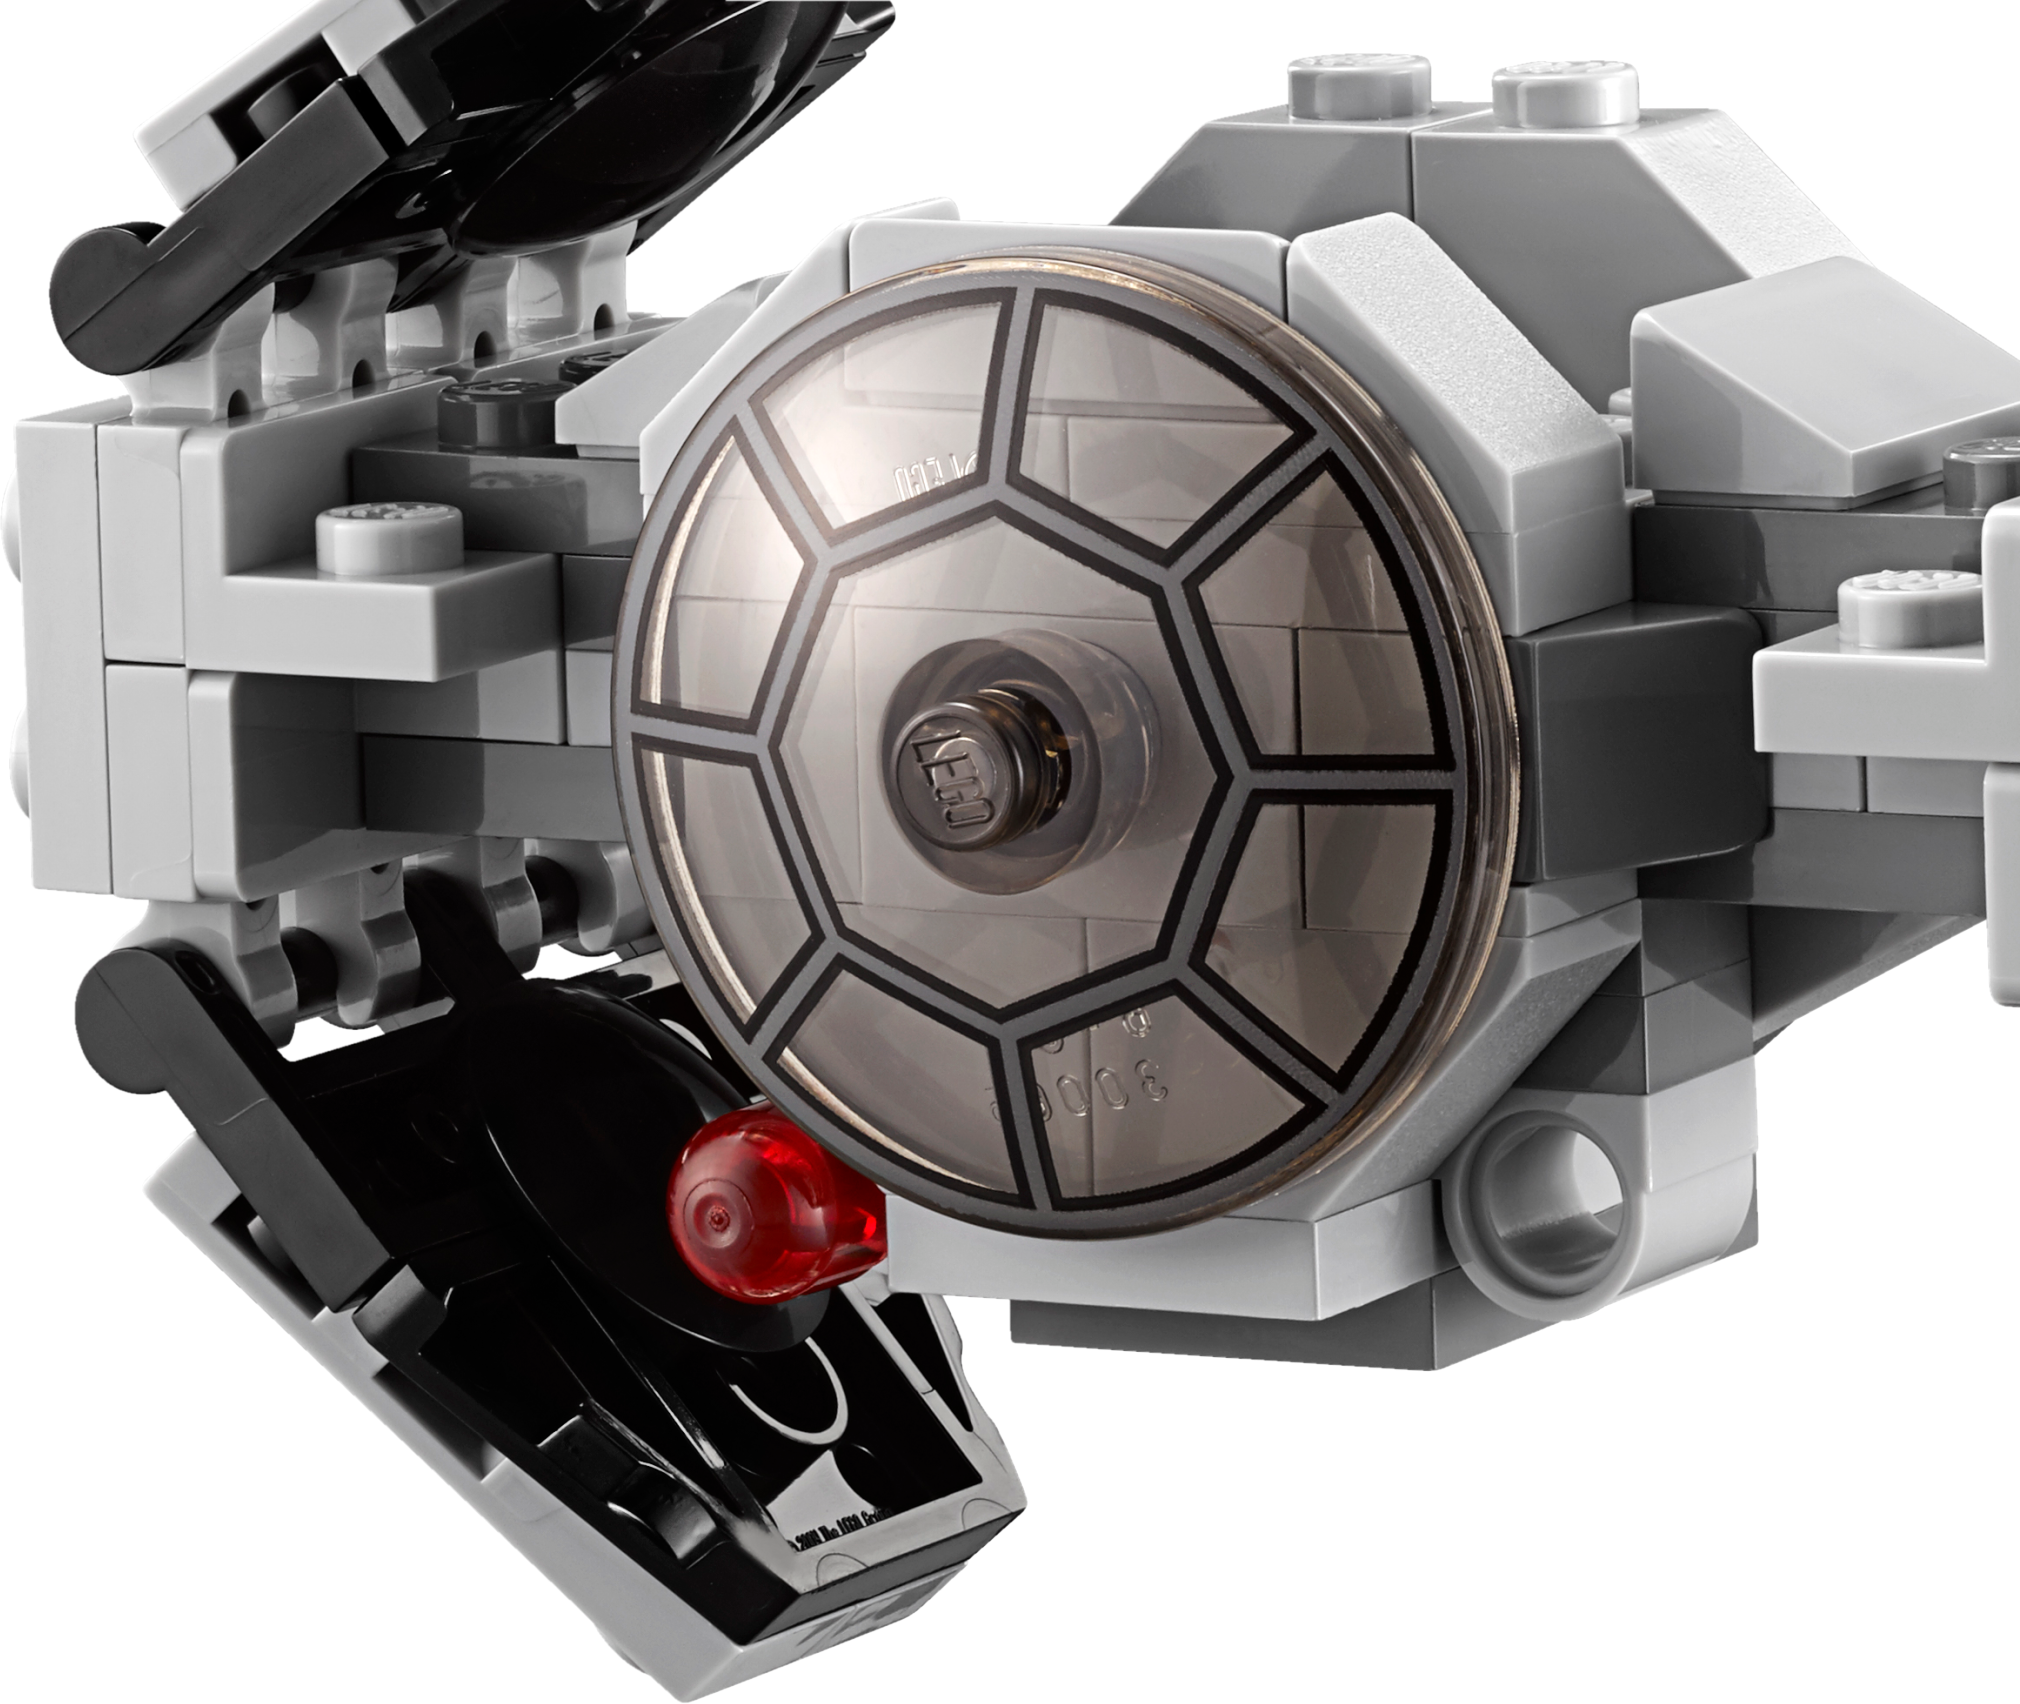 TIE Advanced Prototype™